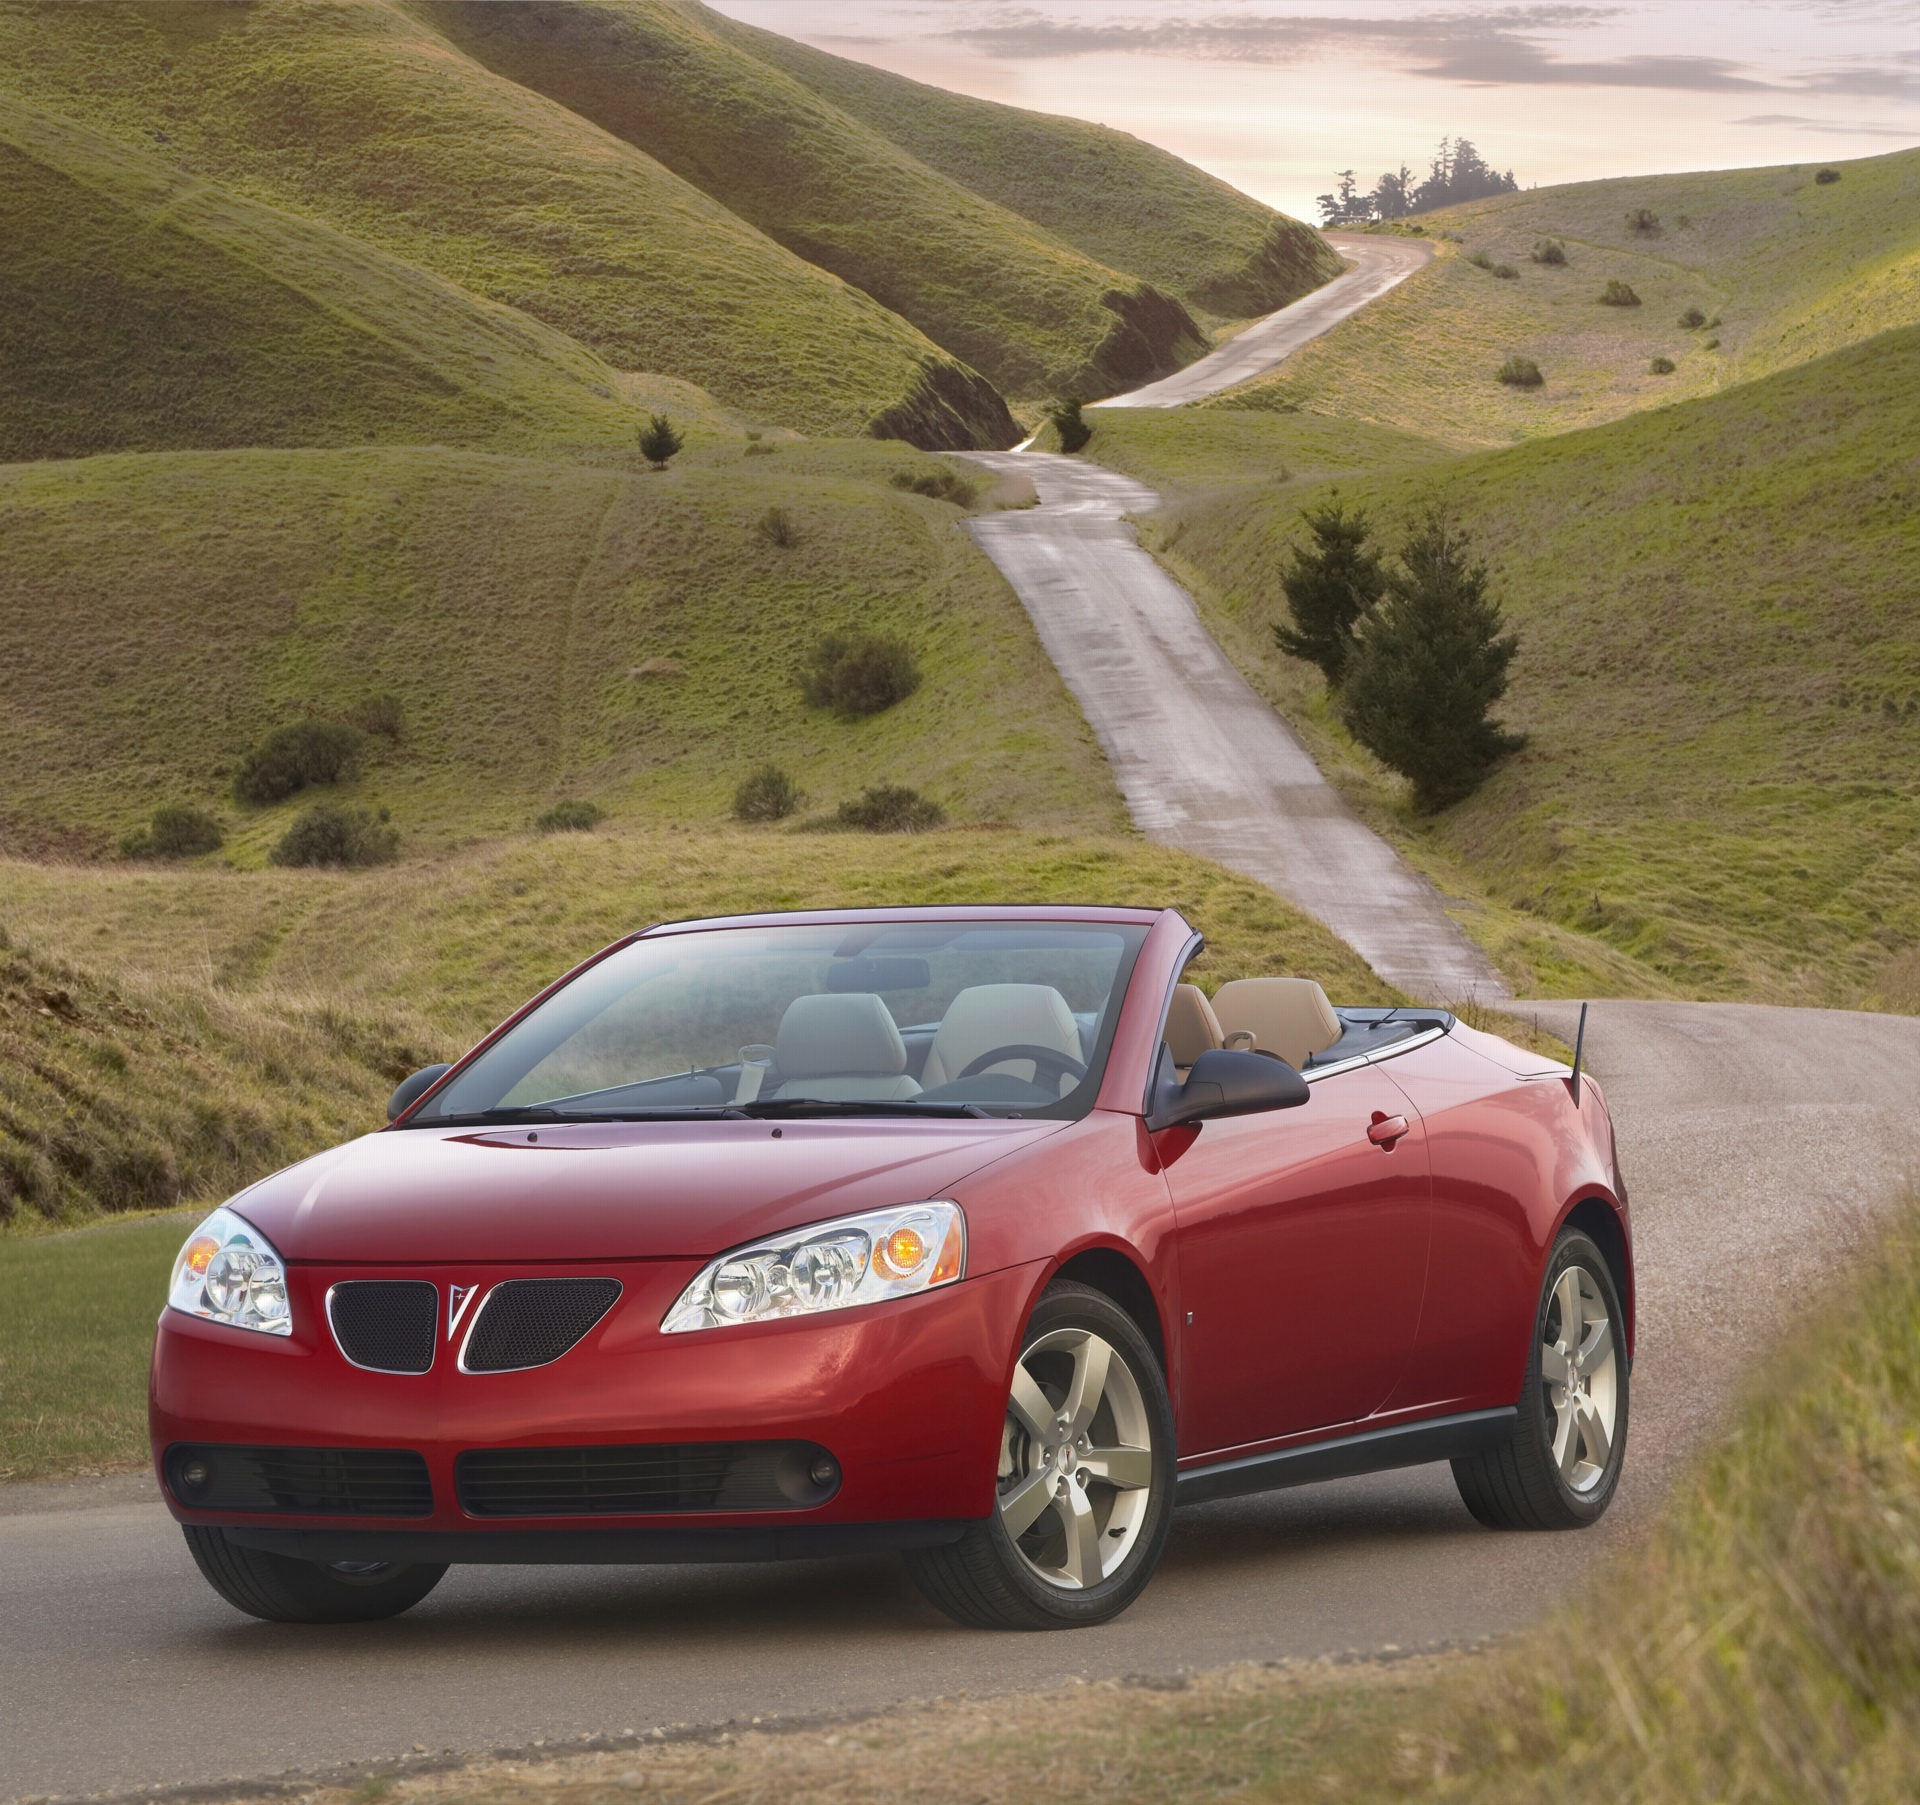 2008 pontiac g6 news and information. Black Bedroom Furniture Sets. Home Design Ideas